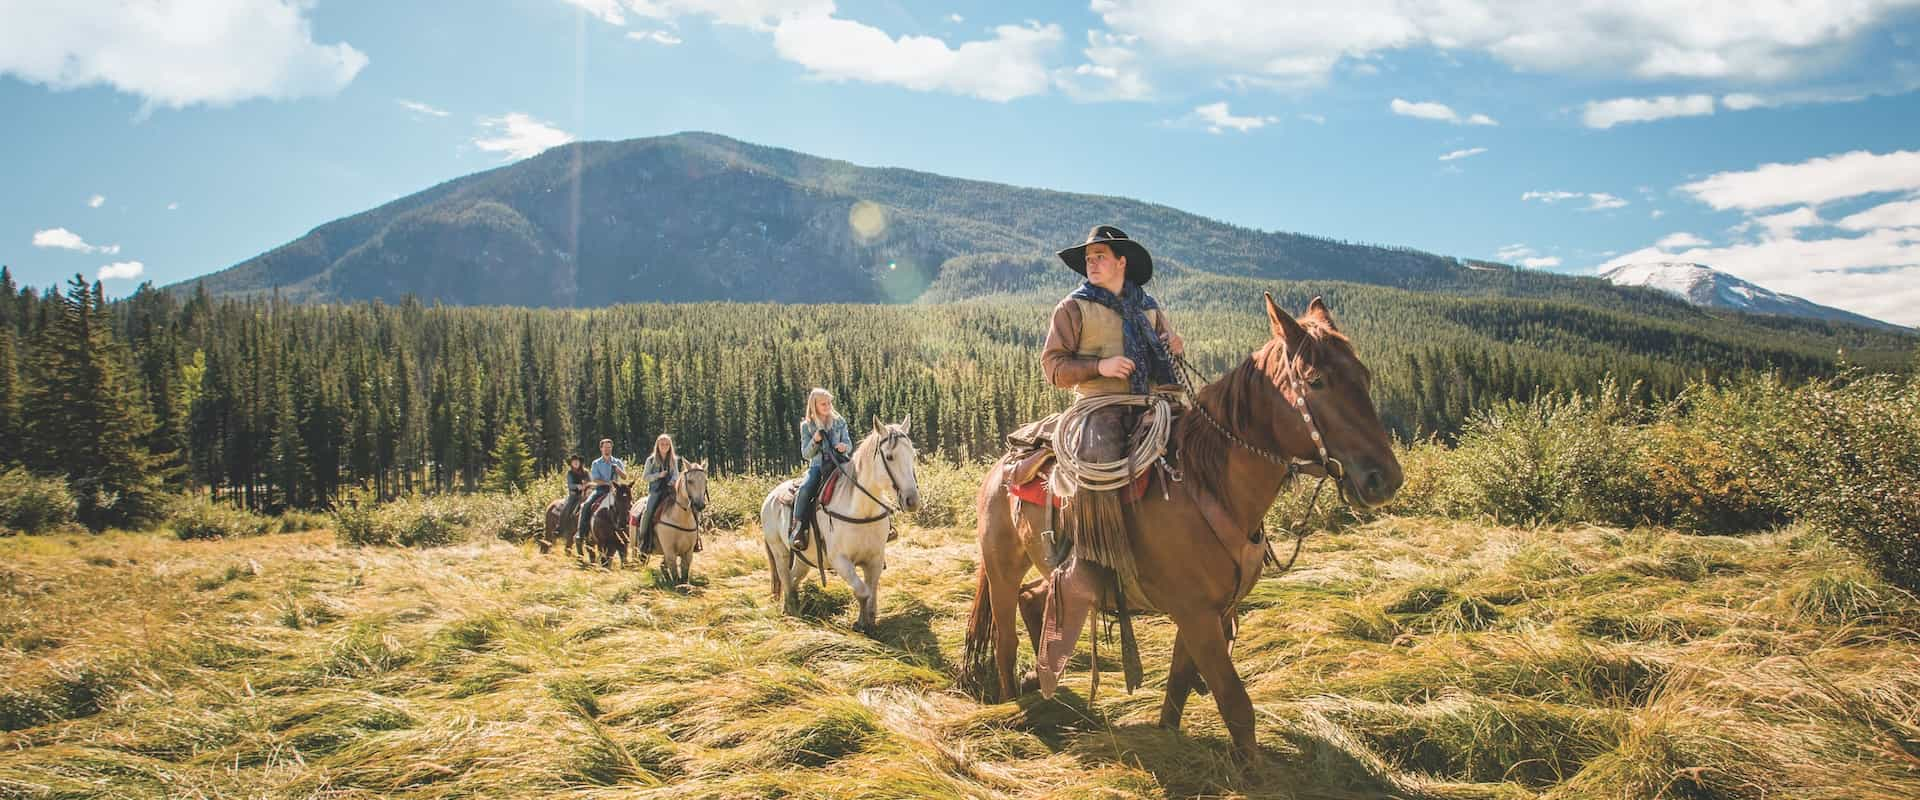 Horseback Ride to a Cowboy Steak Cookout with Banff Trail Riders